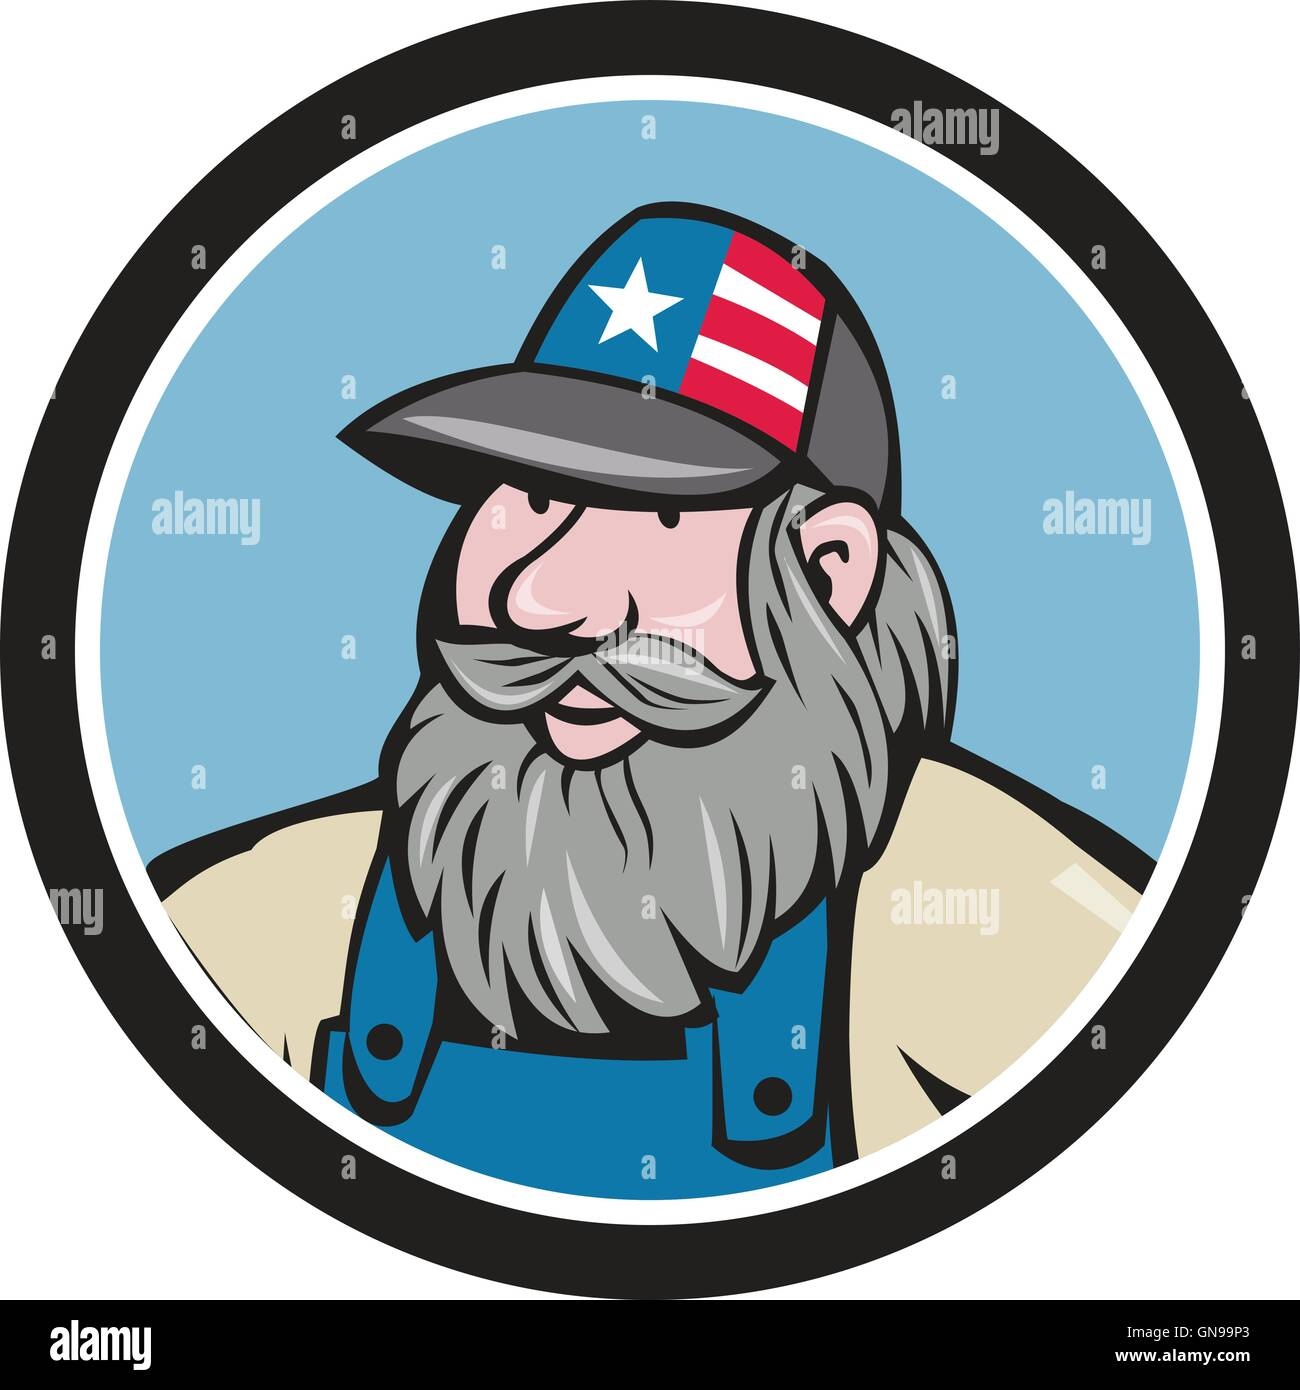 368280bc Hillbilly Man Beard Circle Cartoon Stock Vector Art & Illustration ...